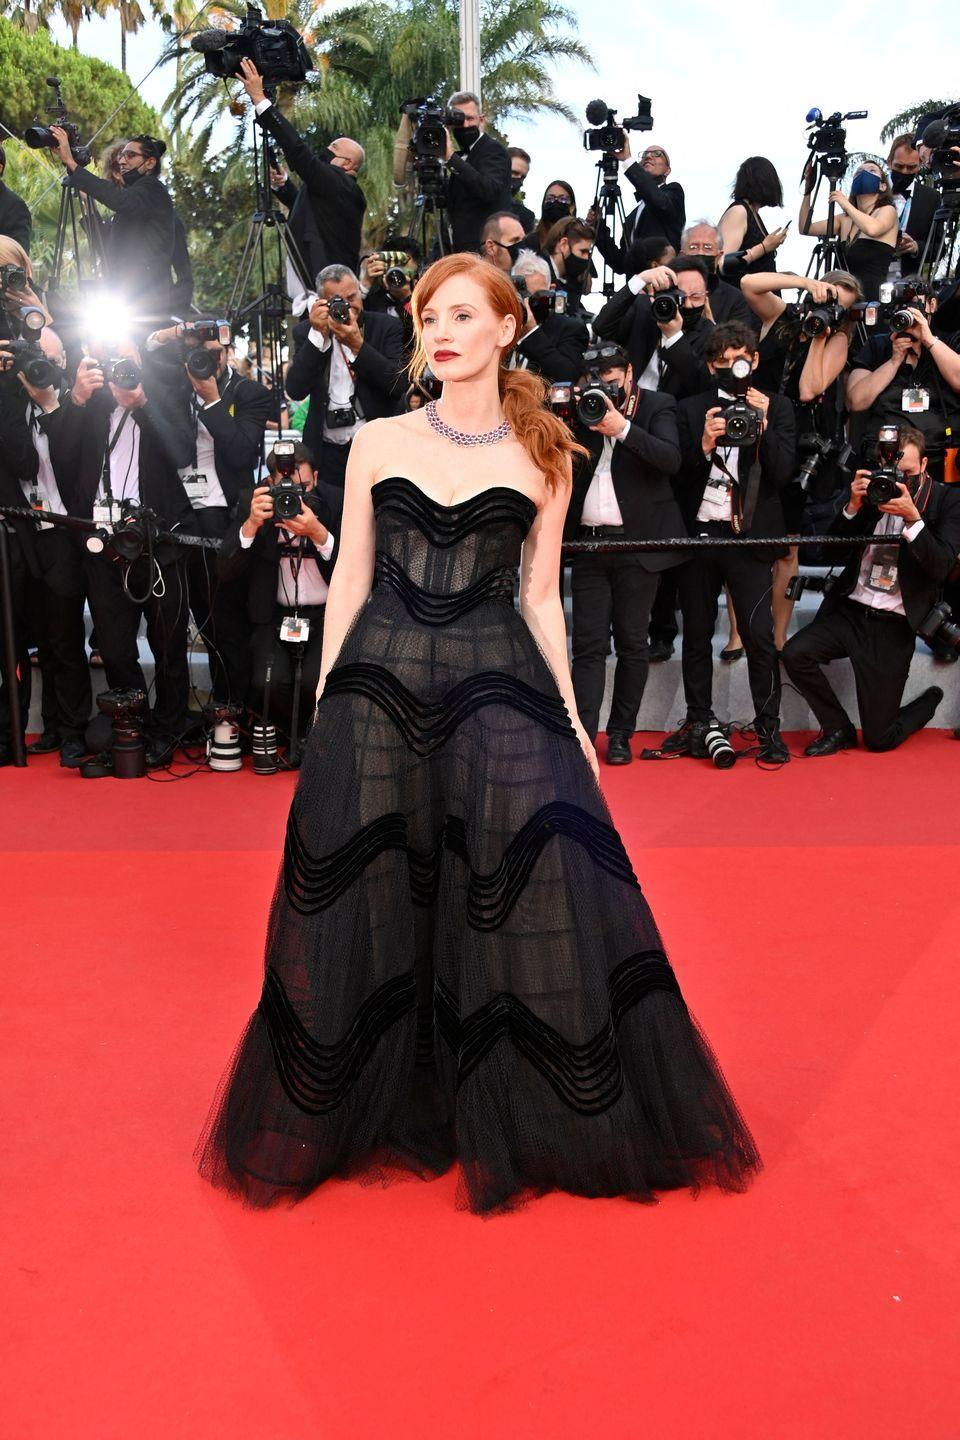 <p>Jessica Chastain walked the famous red carpet at the 2021 Opening Ceremony of the Cannes Film Festival, which also saw the premiere of movie Annette, wearing a black strapless gown. </p>